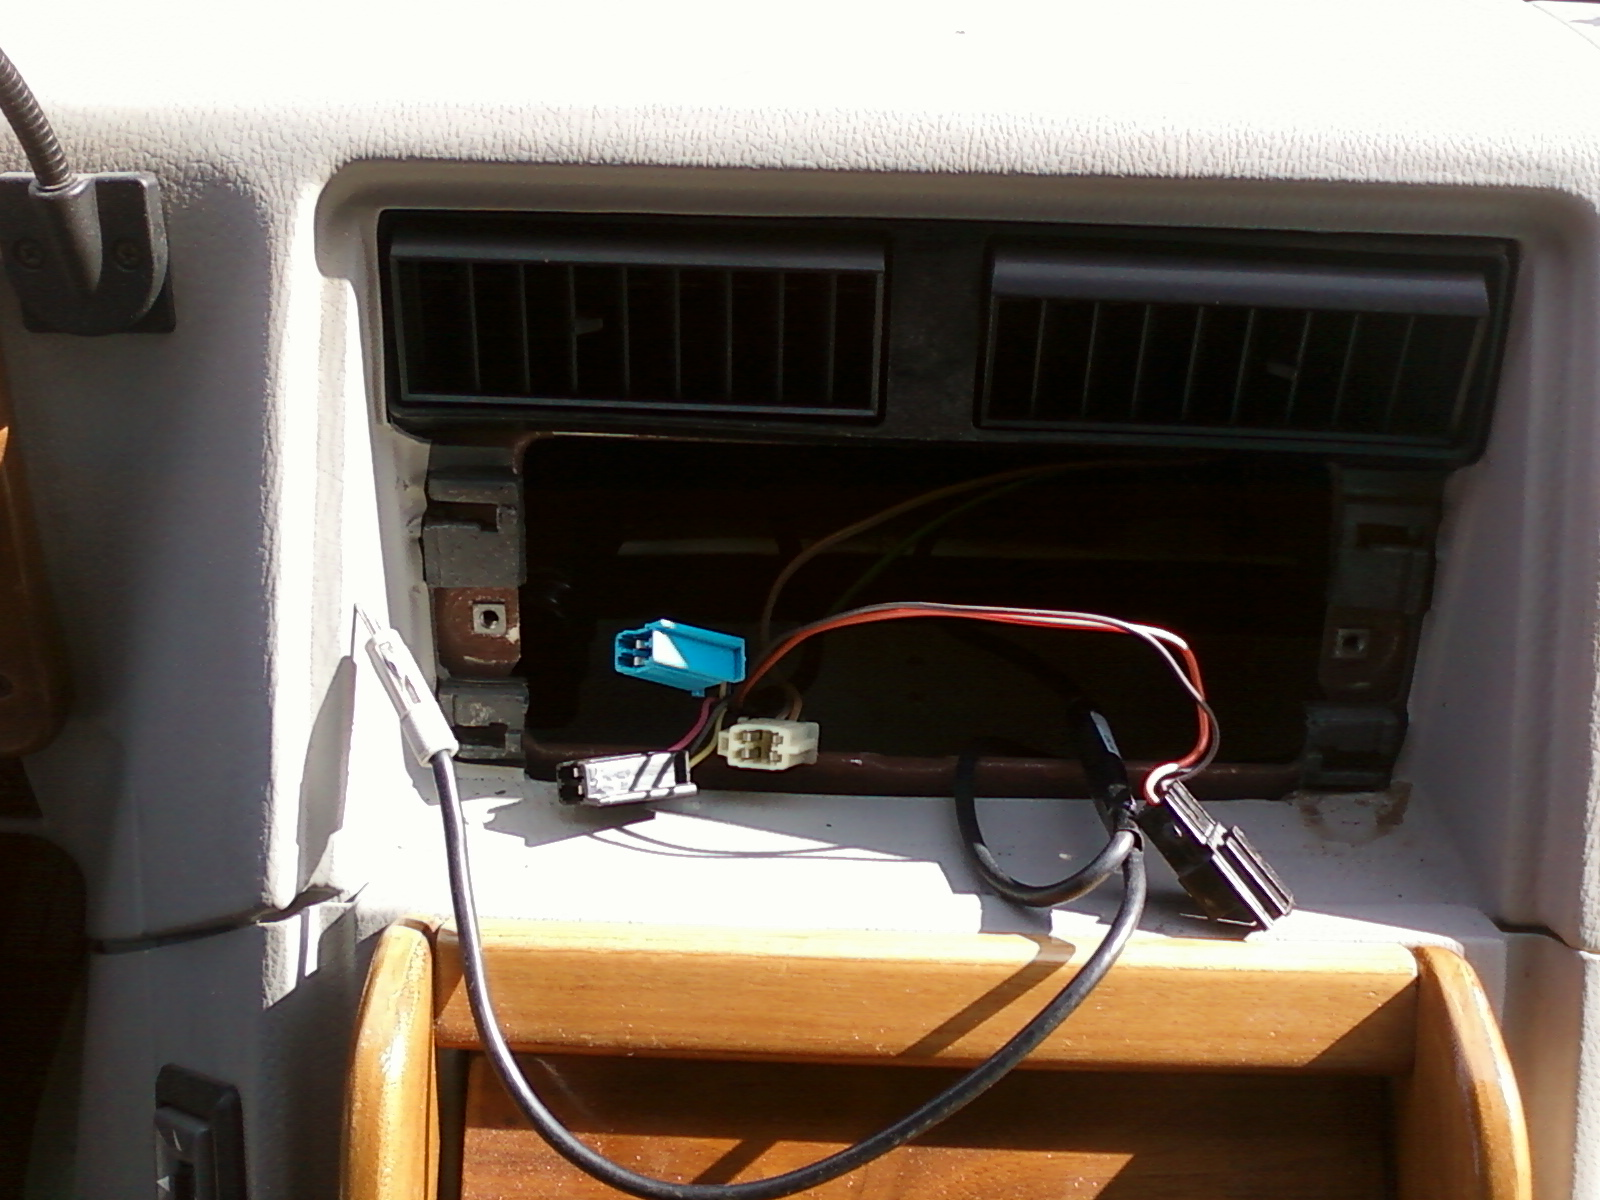 For A 1992 Gmc Vandura With Delco 2 Din Model 16131335 And Pioneer Avic X910bt Wiring Diagram 2014 09 30 021037 Dash